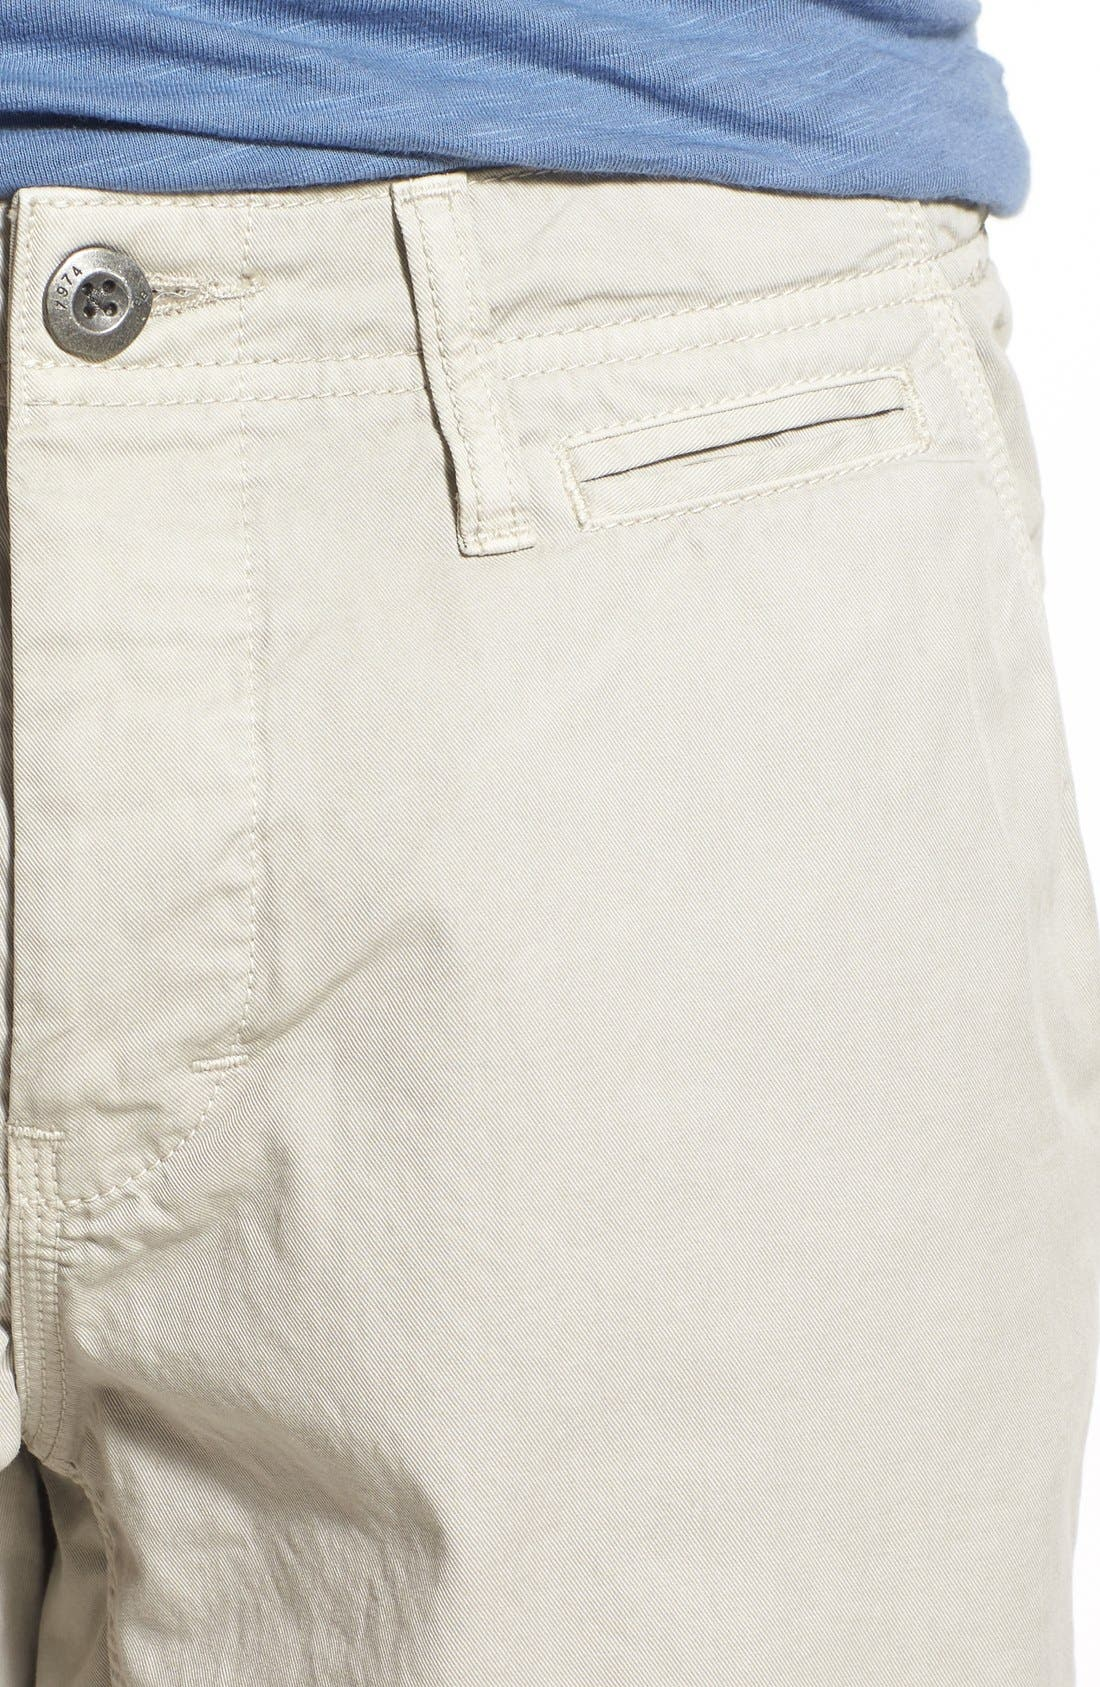 'Napa' Chino Shorts,                             Alternate thumbnail 43, color,